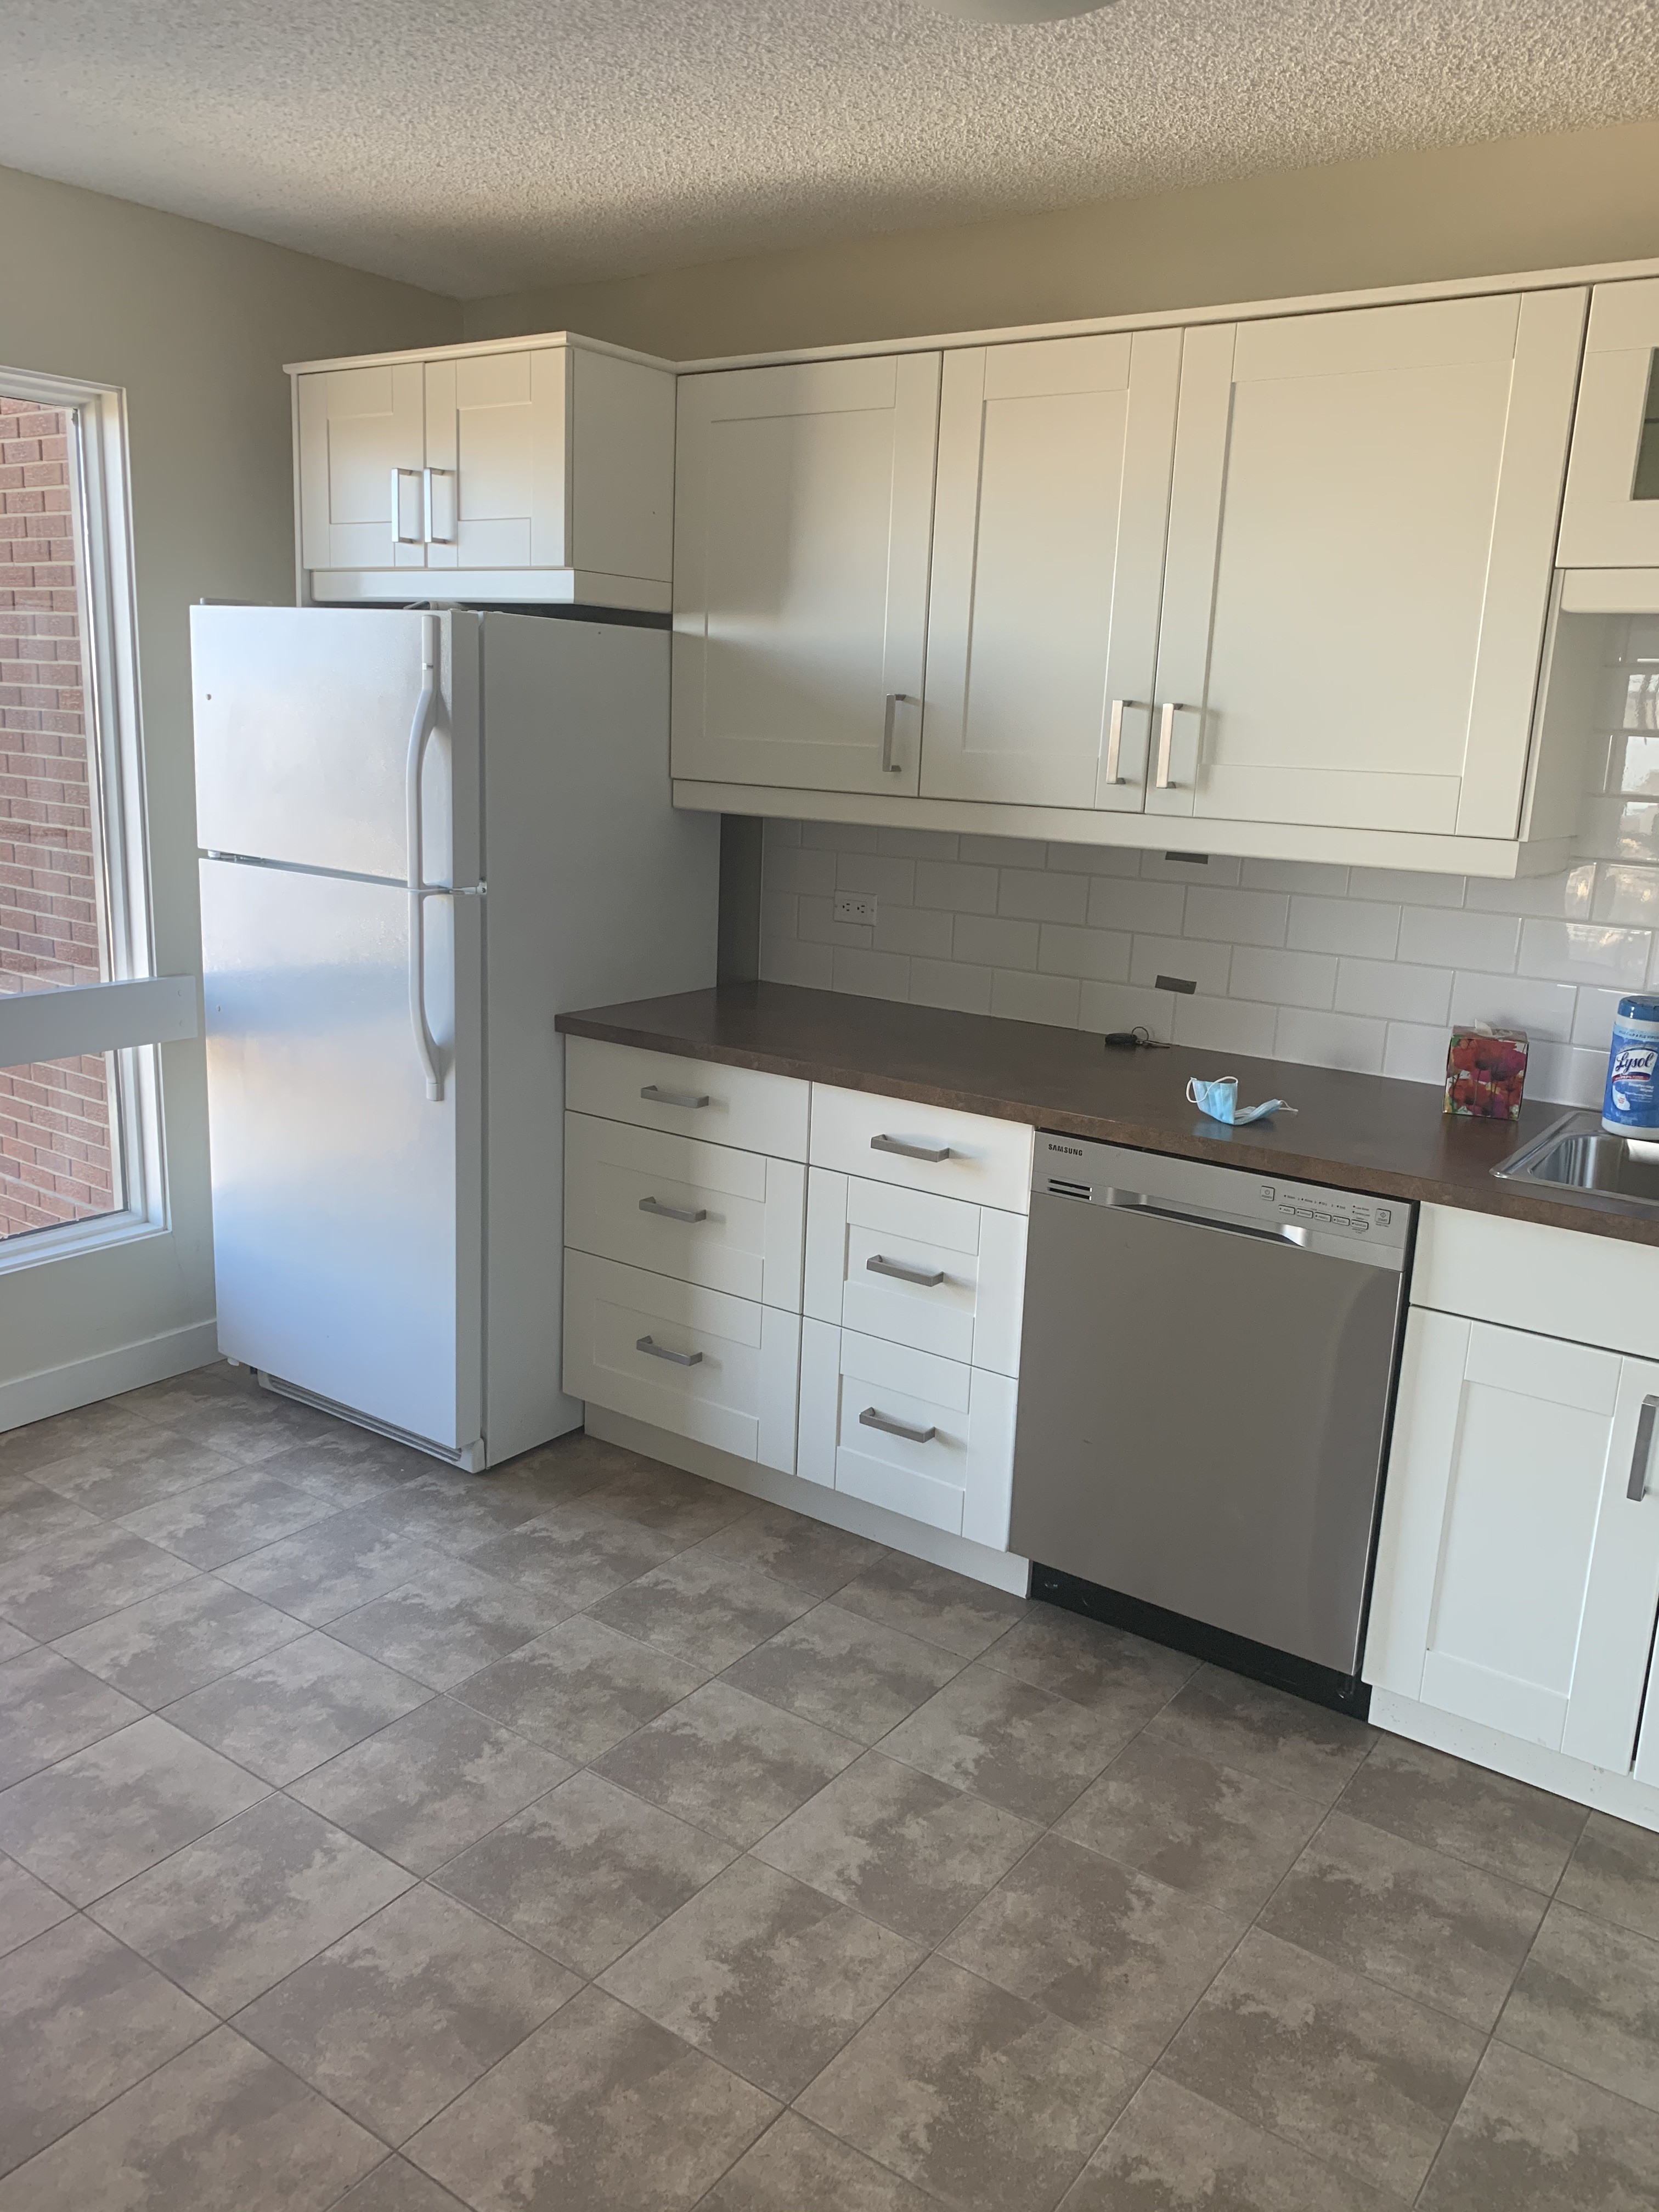 Very Spacious 1 bed 1 bath condo. University area. $1350/month